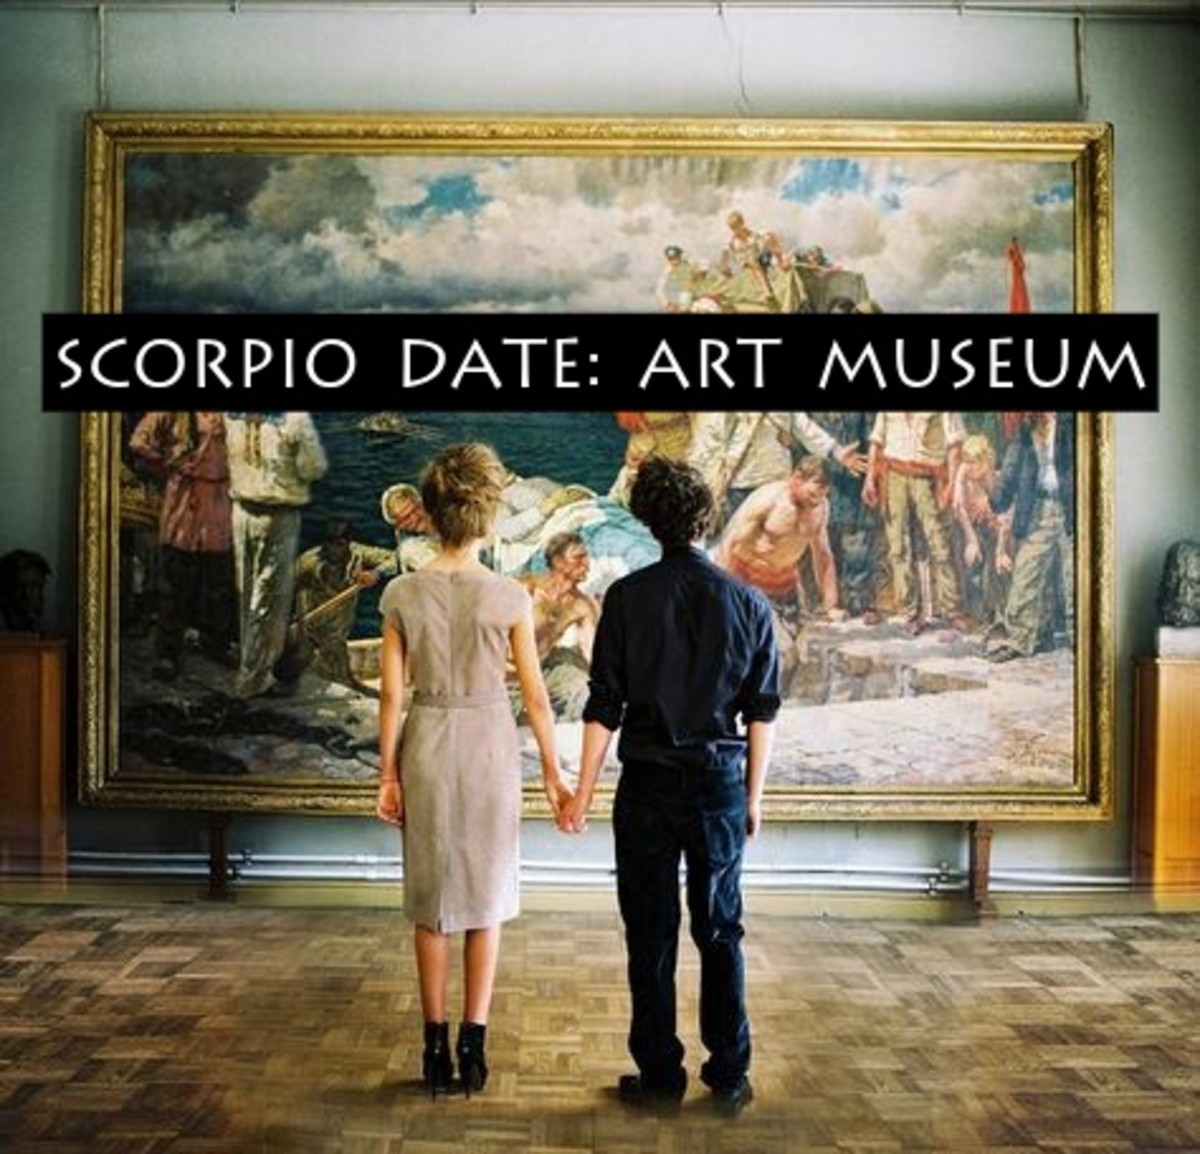 Take your Scorpio to a place that inspires his or her creativity. Art museums will inspire bold conversations. The Scorpio is always looking for the next idea to inspire their next project. They want a partner with a creative spirit.